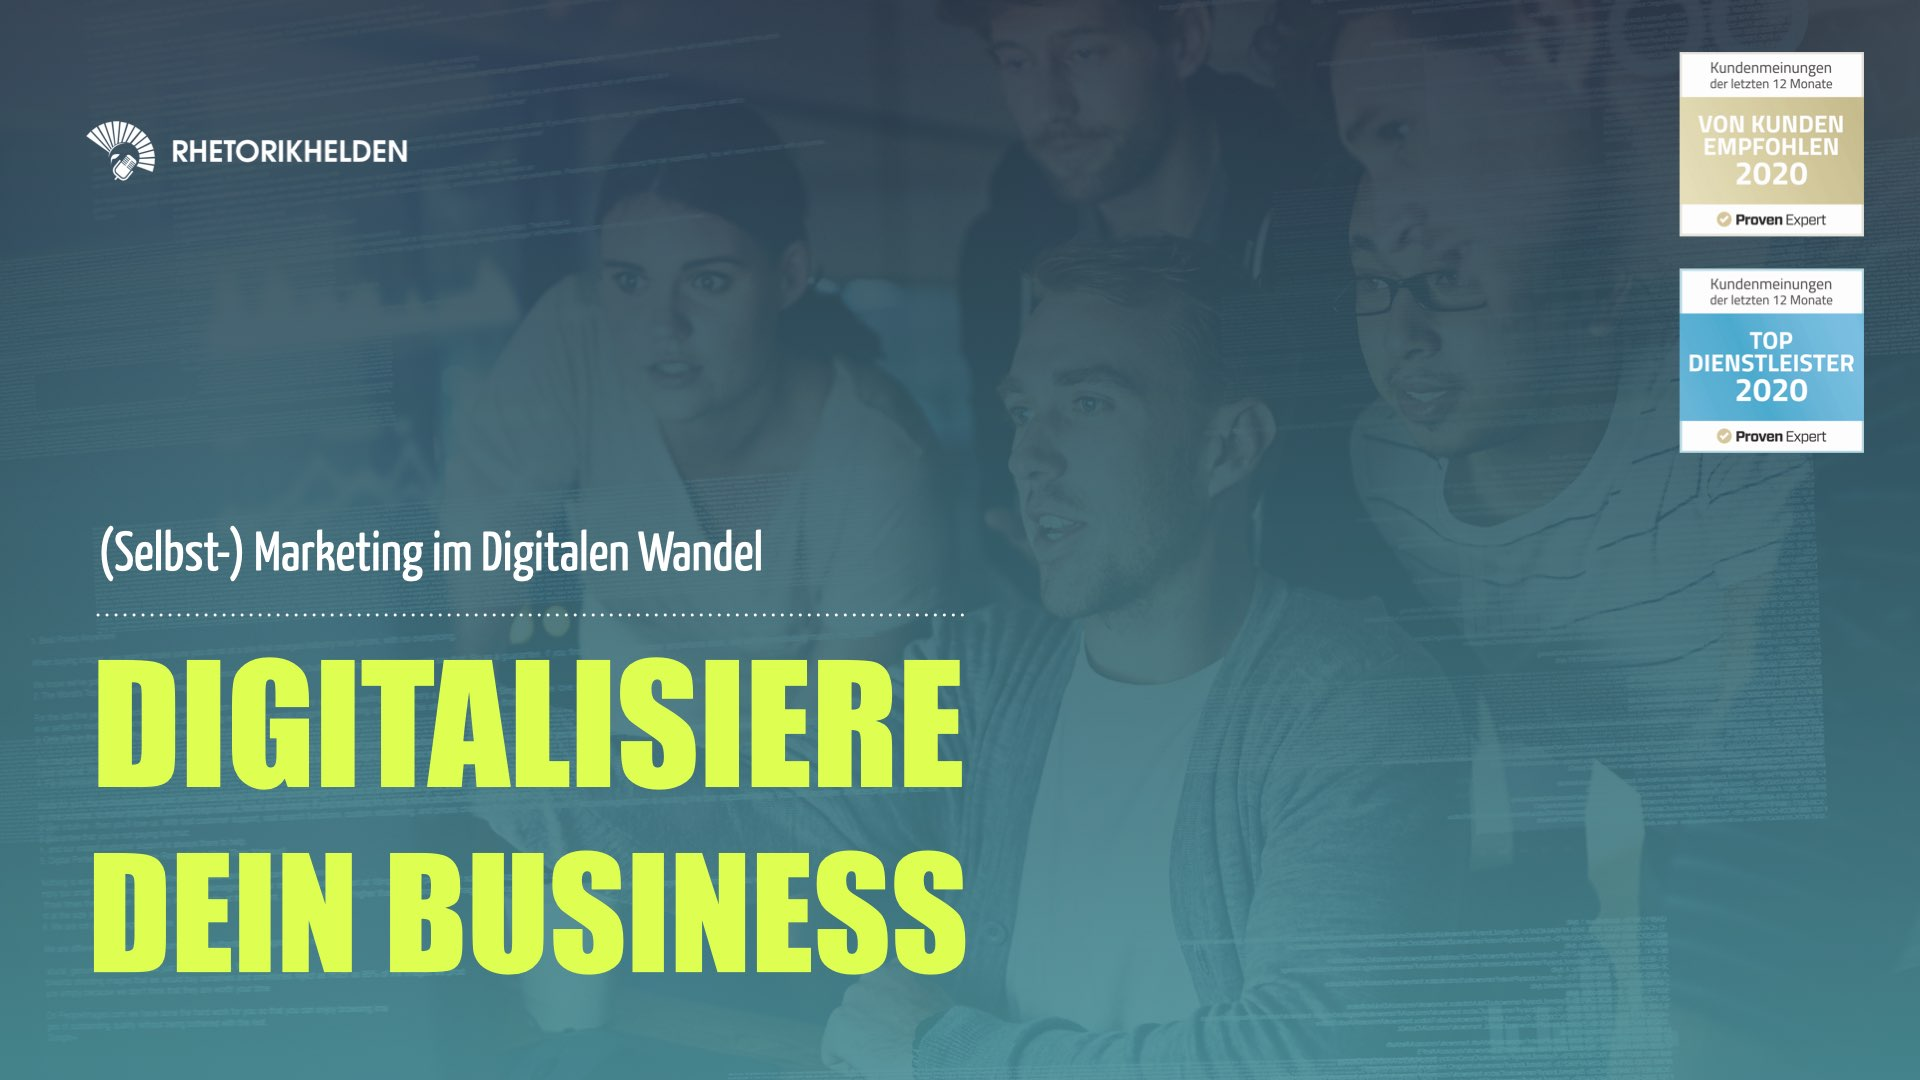 Titelbild zum offenen Workshop Digitalisiere dein Business der Rhetorikhelden